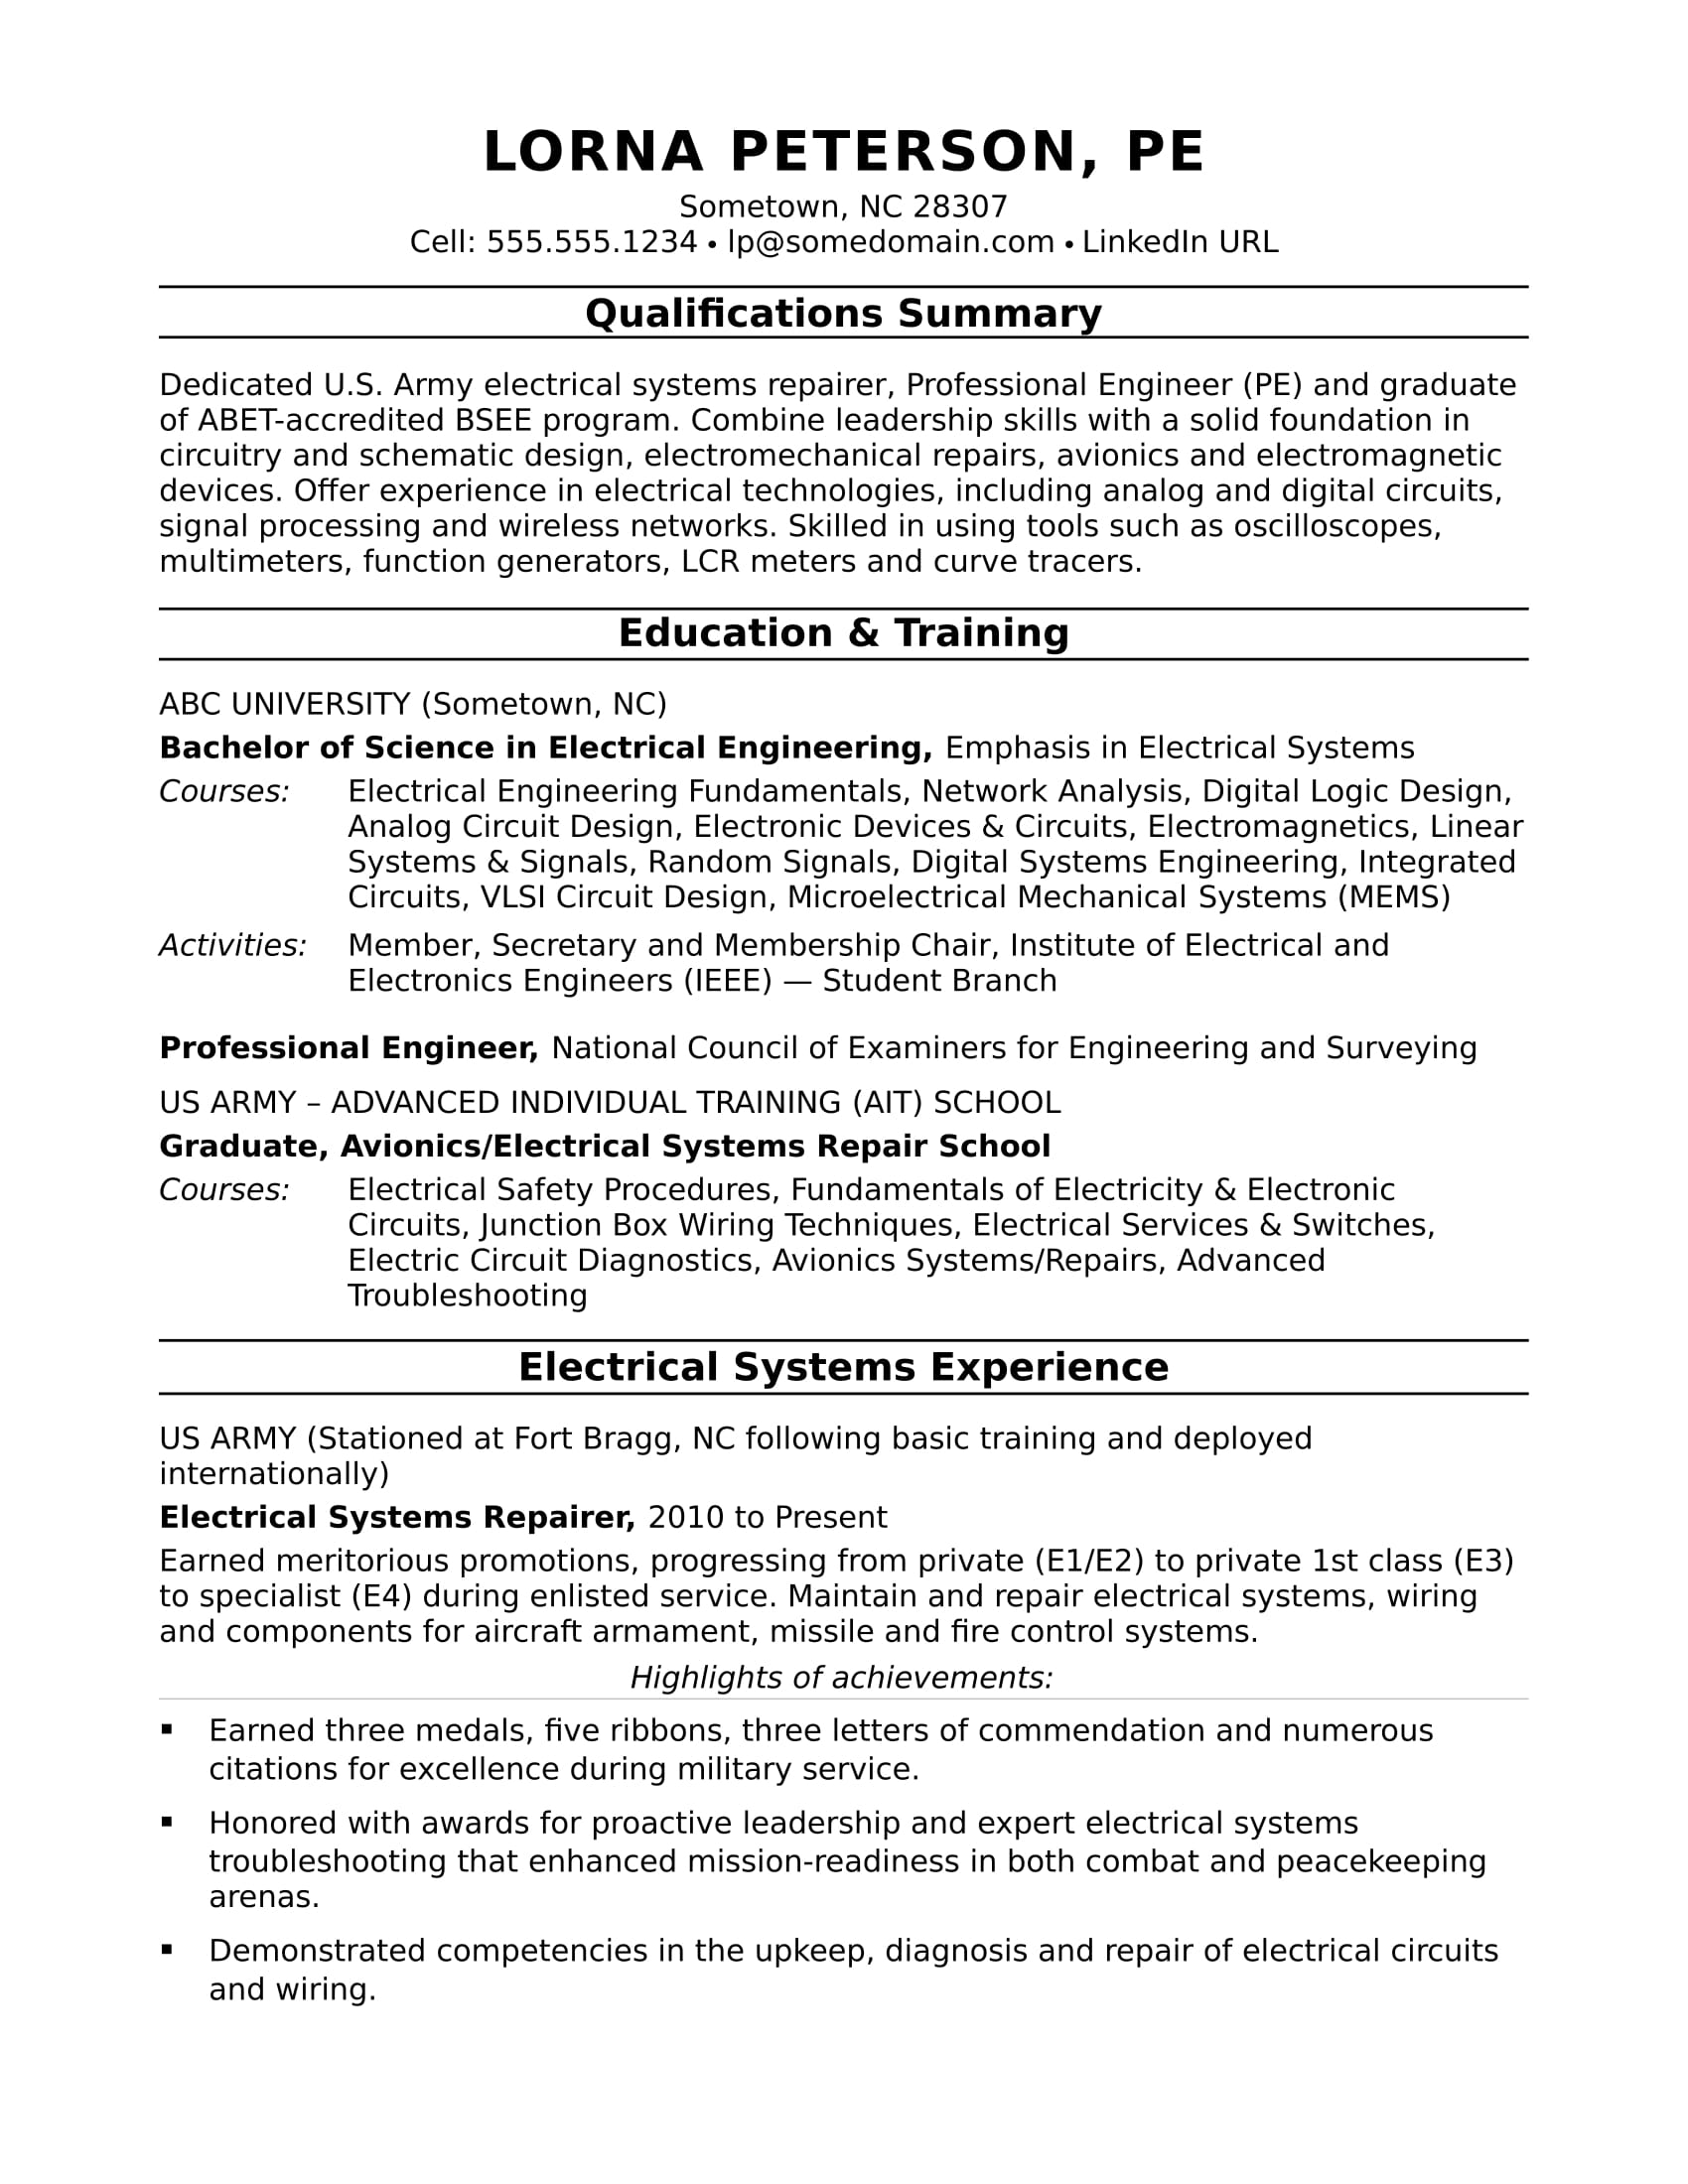 Lovely Sample Resume For A Midlevel Electrical Engineer Inside Resume For Electrical Engineer